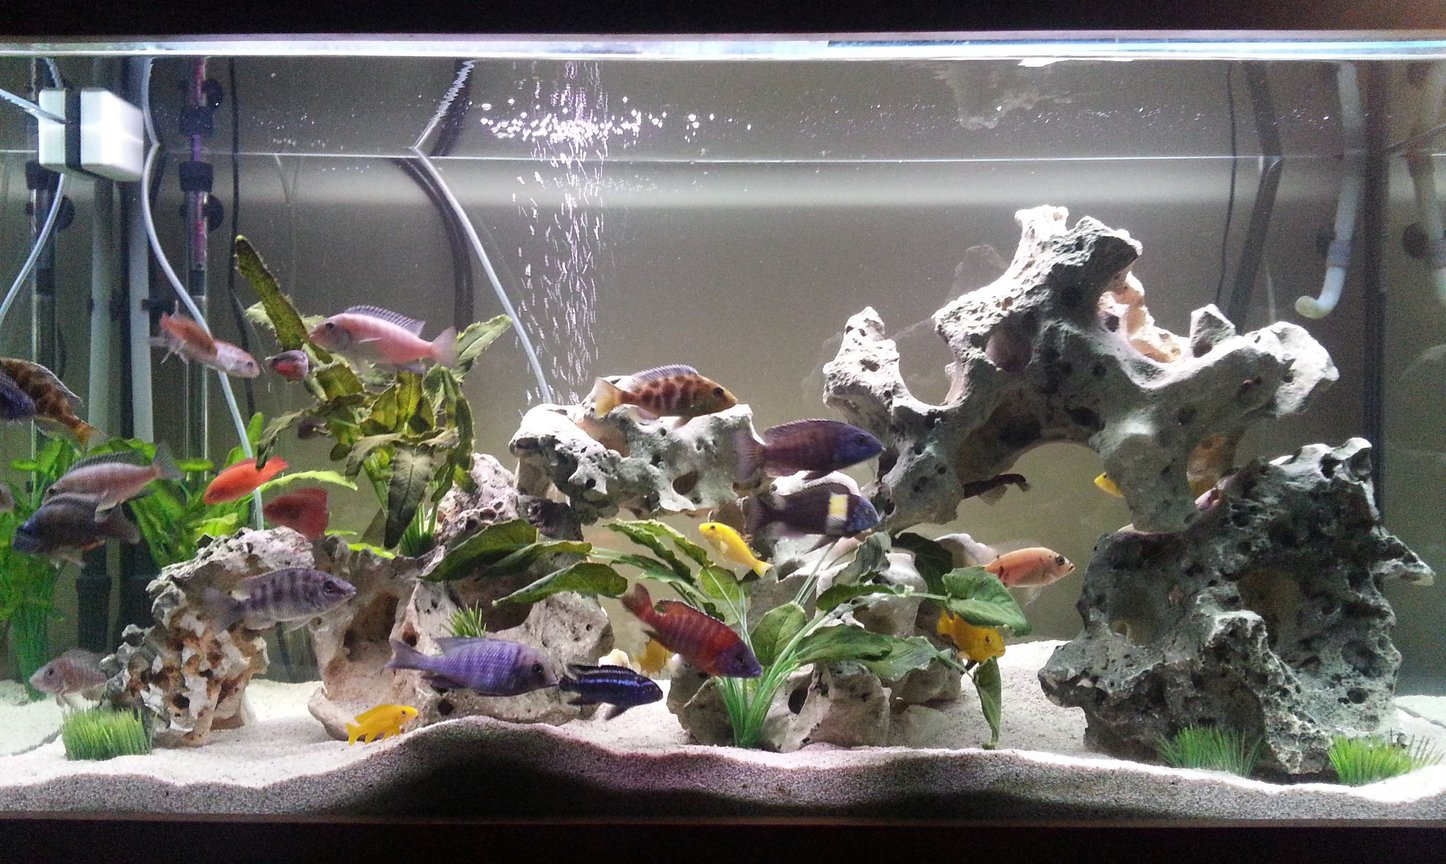 85 gallons freshwater fish tank (mostly fish and non-living decorations) - 85 Gallon freshwater aquarium with texas holey rock and decorative plants, Changed it up after 3 years so give it something new.